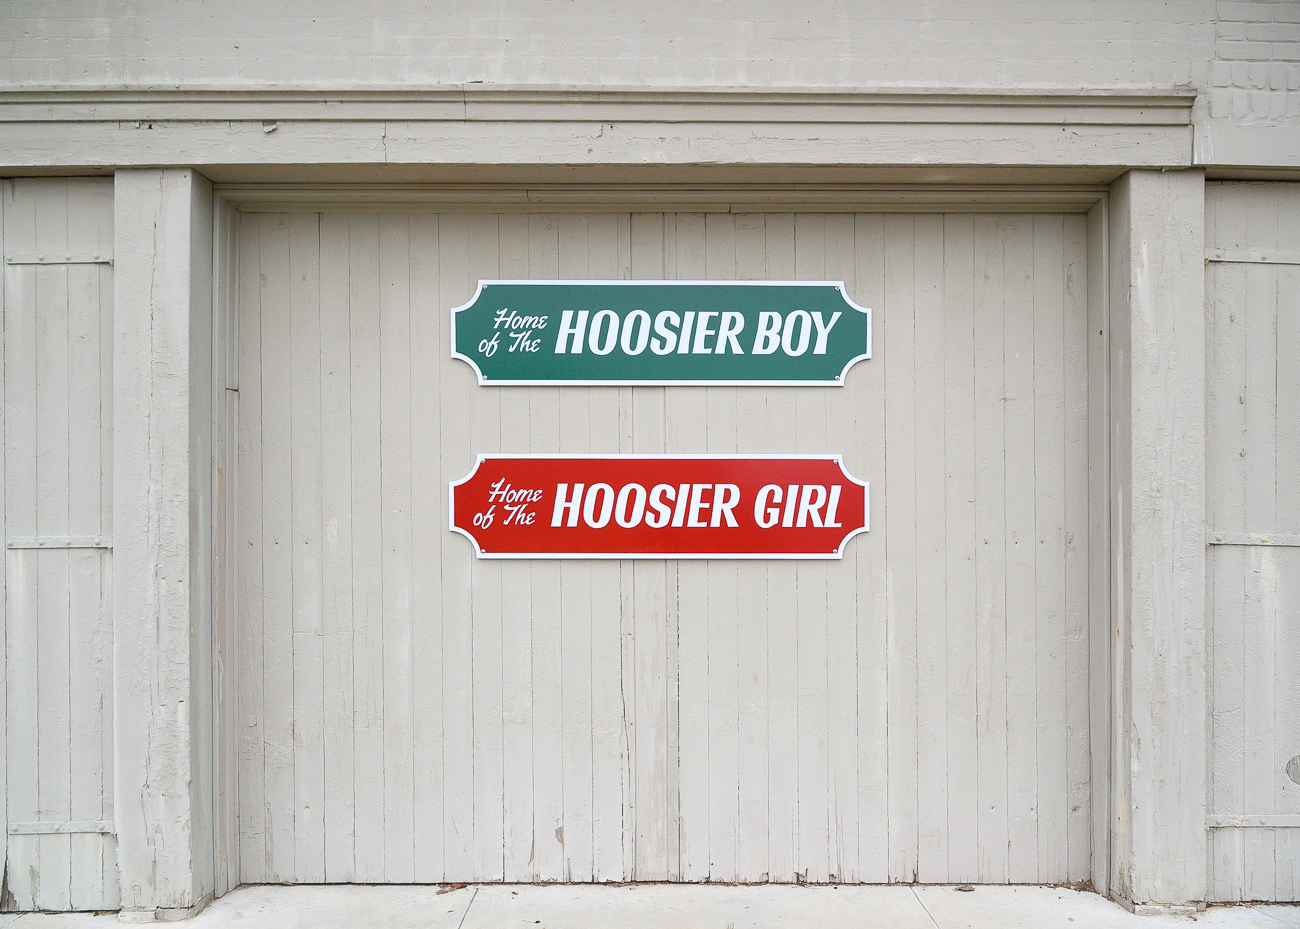 The Ohio County Historical Museum is home to two famous boats: the Hoosier Boy and Girl. / Image: Phil Armstrong, Cincinnati Refined // Published: 1.7.20